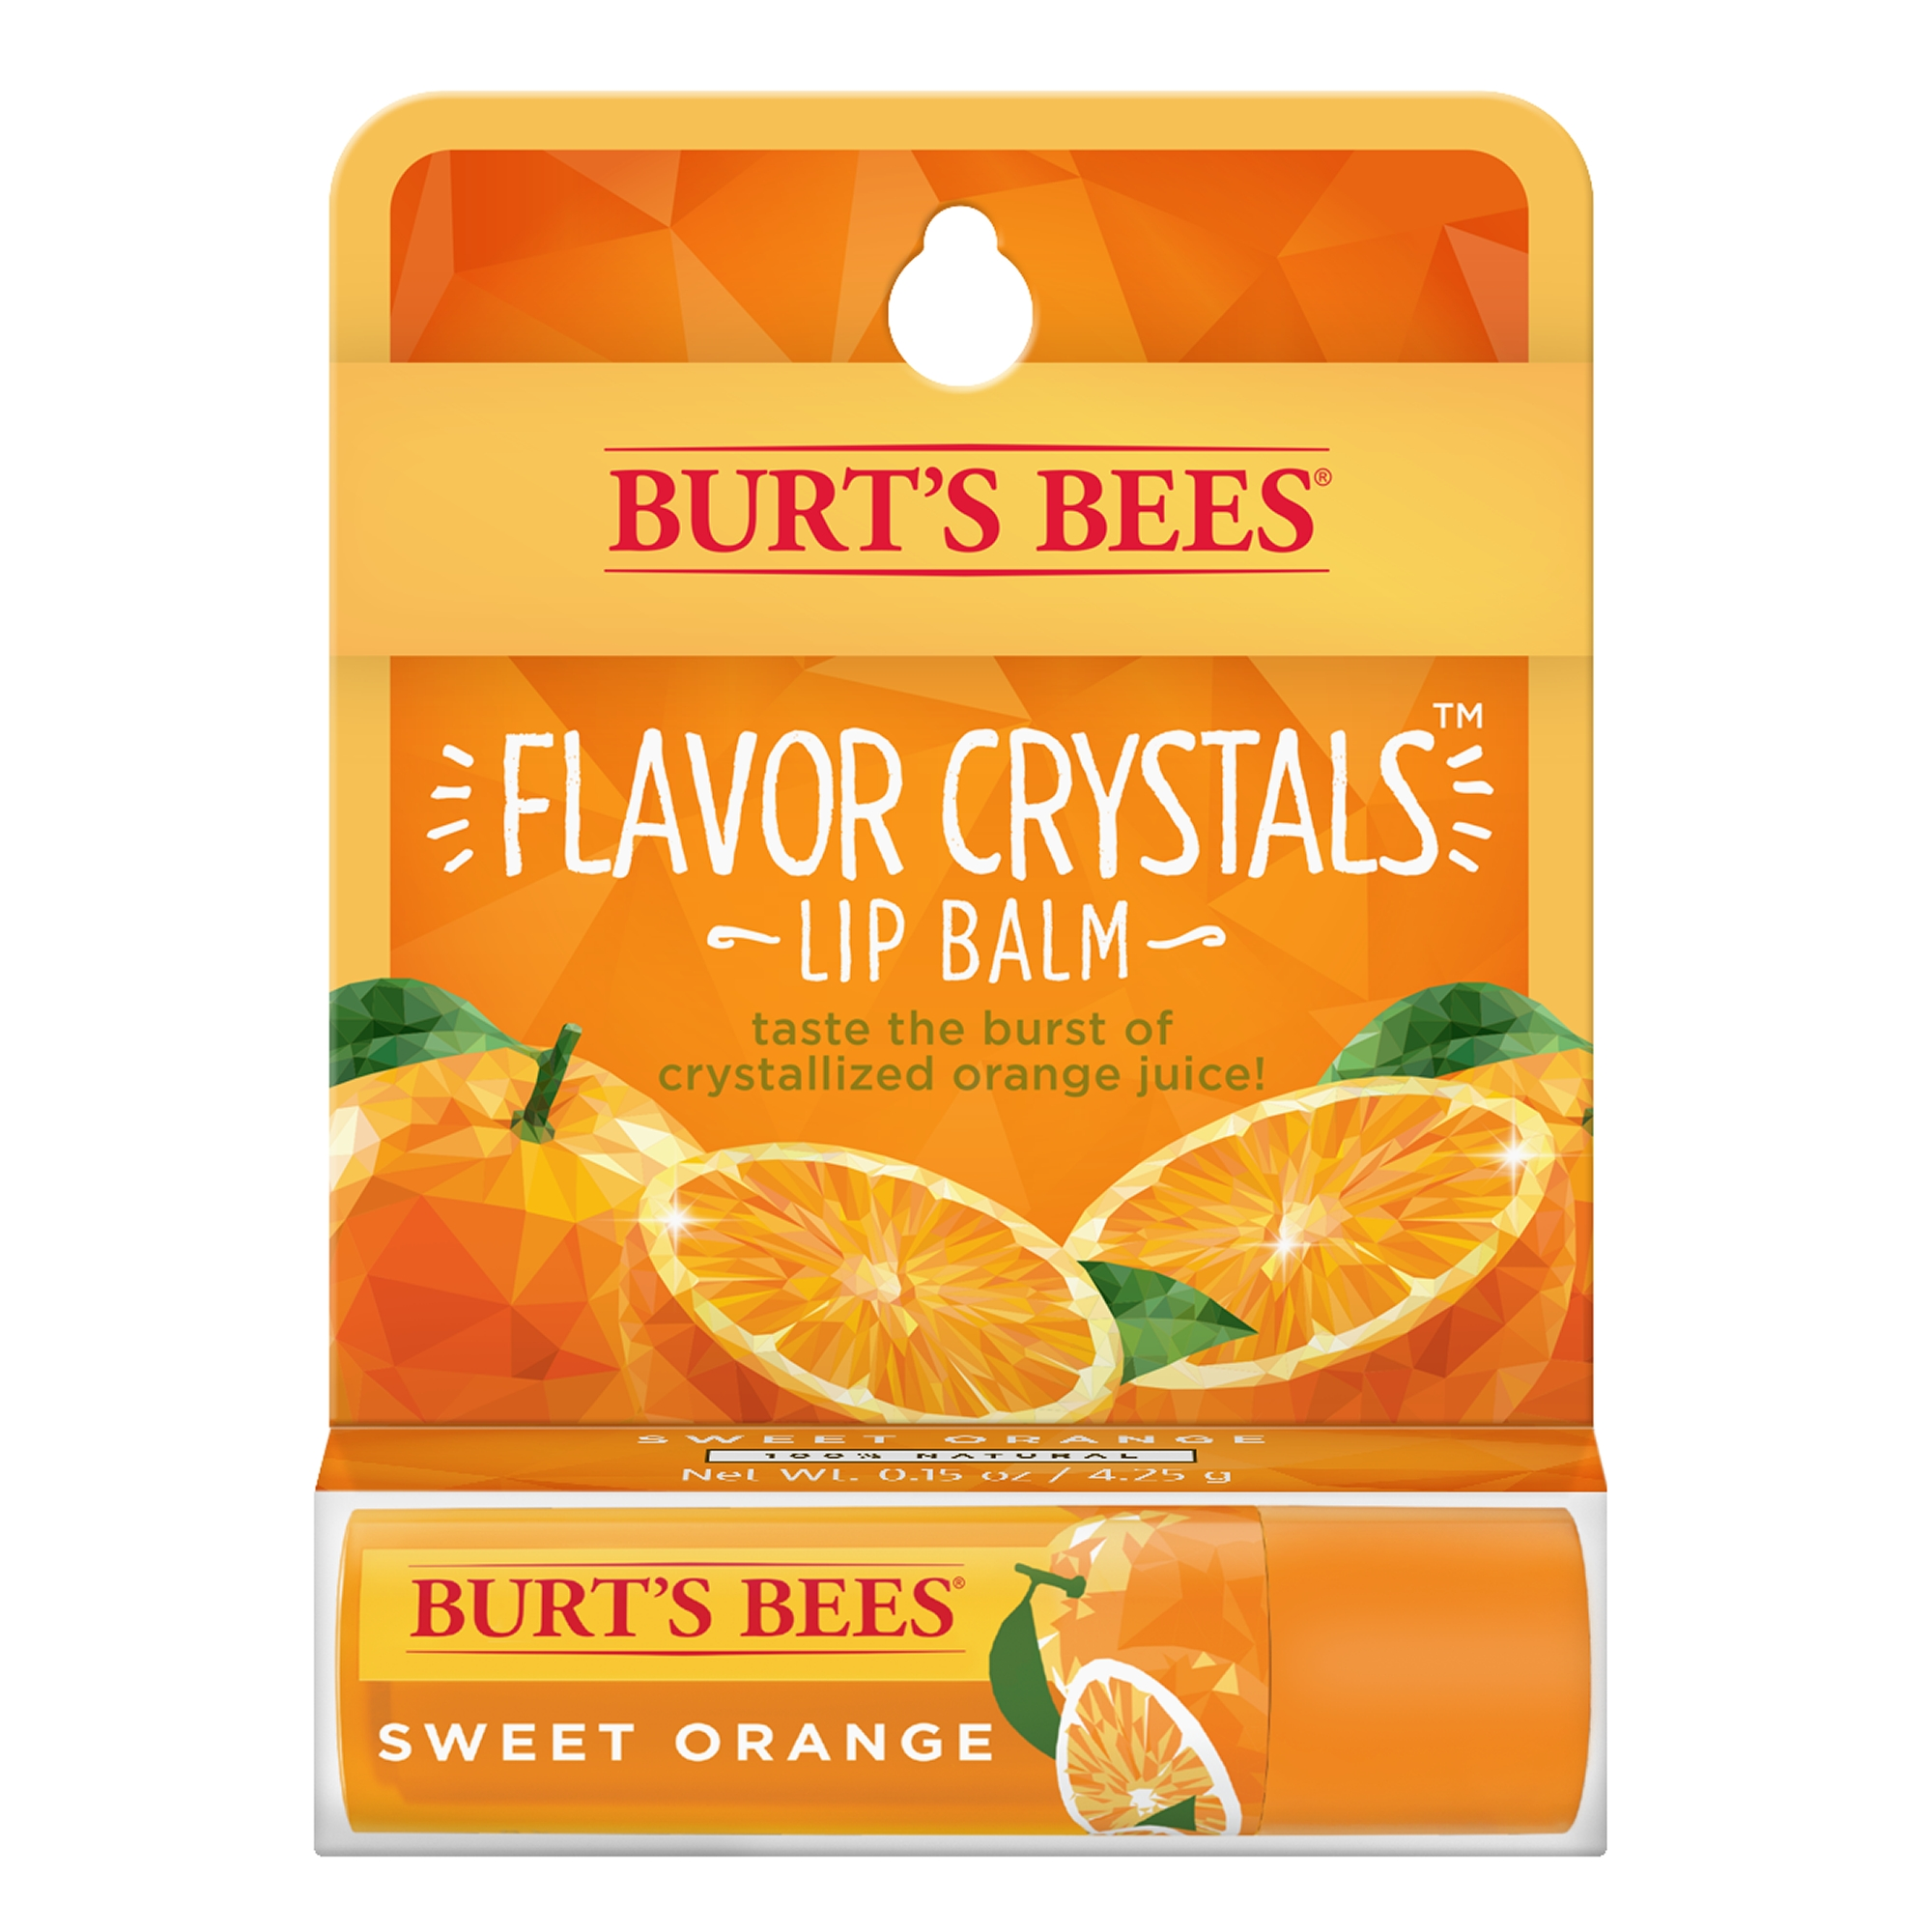 (2 Pack) Burt's Bees Flavor Crystals 100% Natural Lip Balm, Sweet Orange with Beeswax & Fruit Extracts - 1 Tube